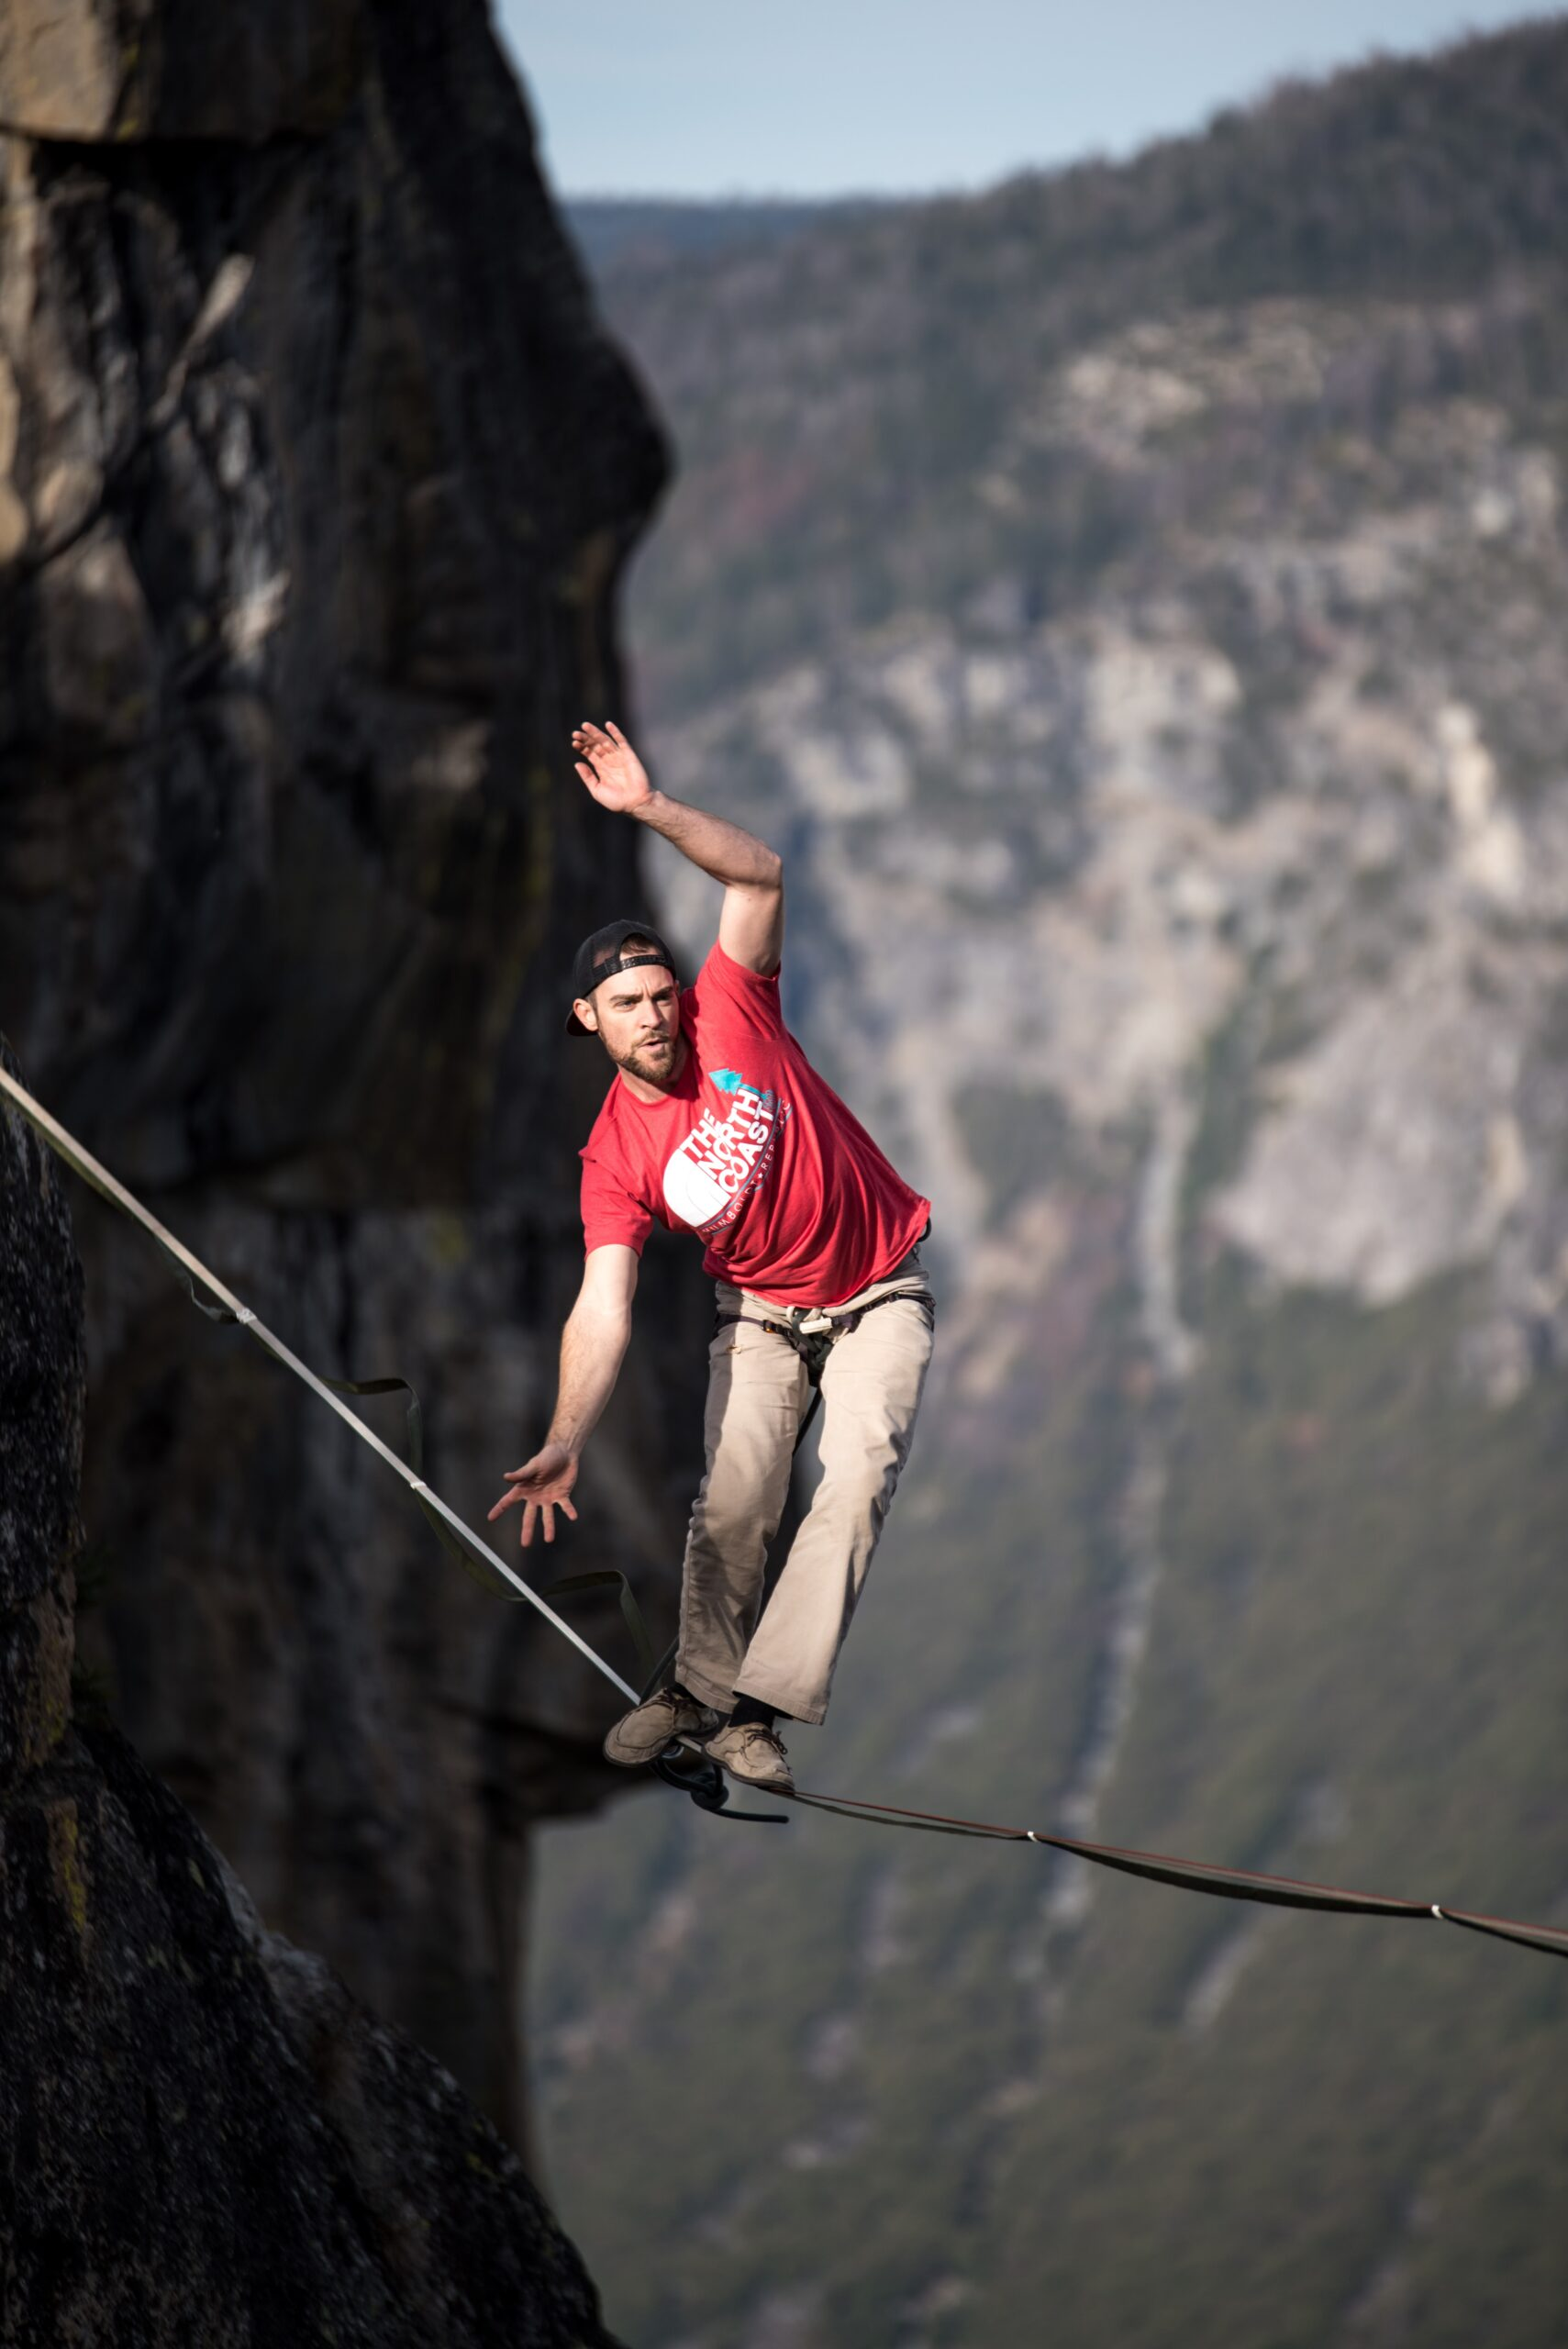 Man in red t-shirt trying to get balance on a tightrope.